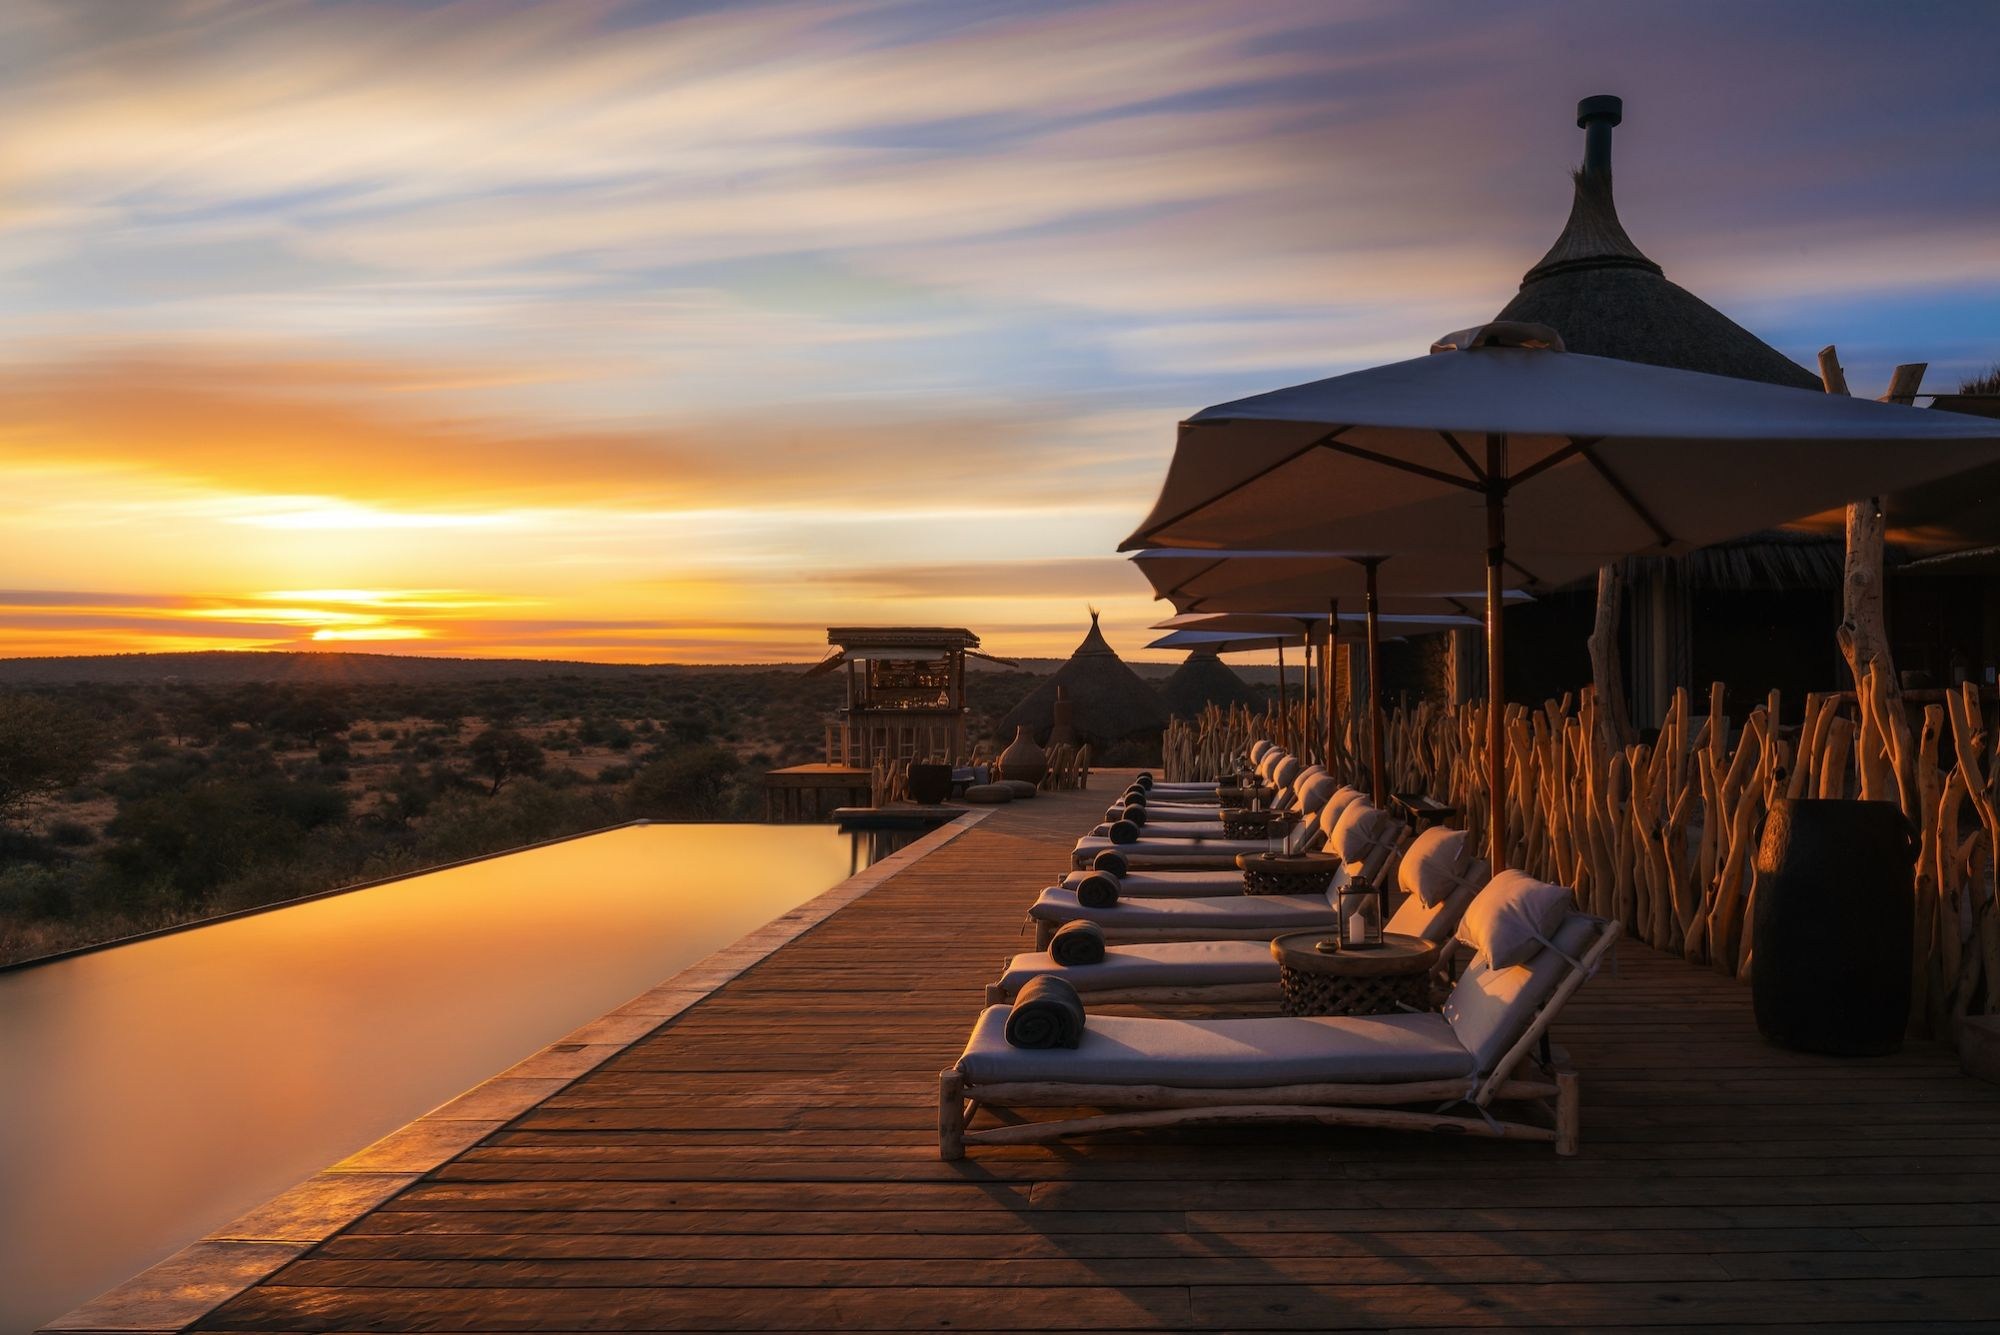 Where To Stay In Namibia: The Hottest Hotels In One Of The World's Last Wildernesses